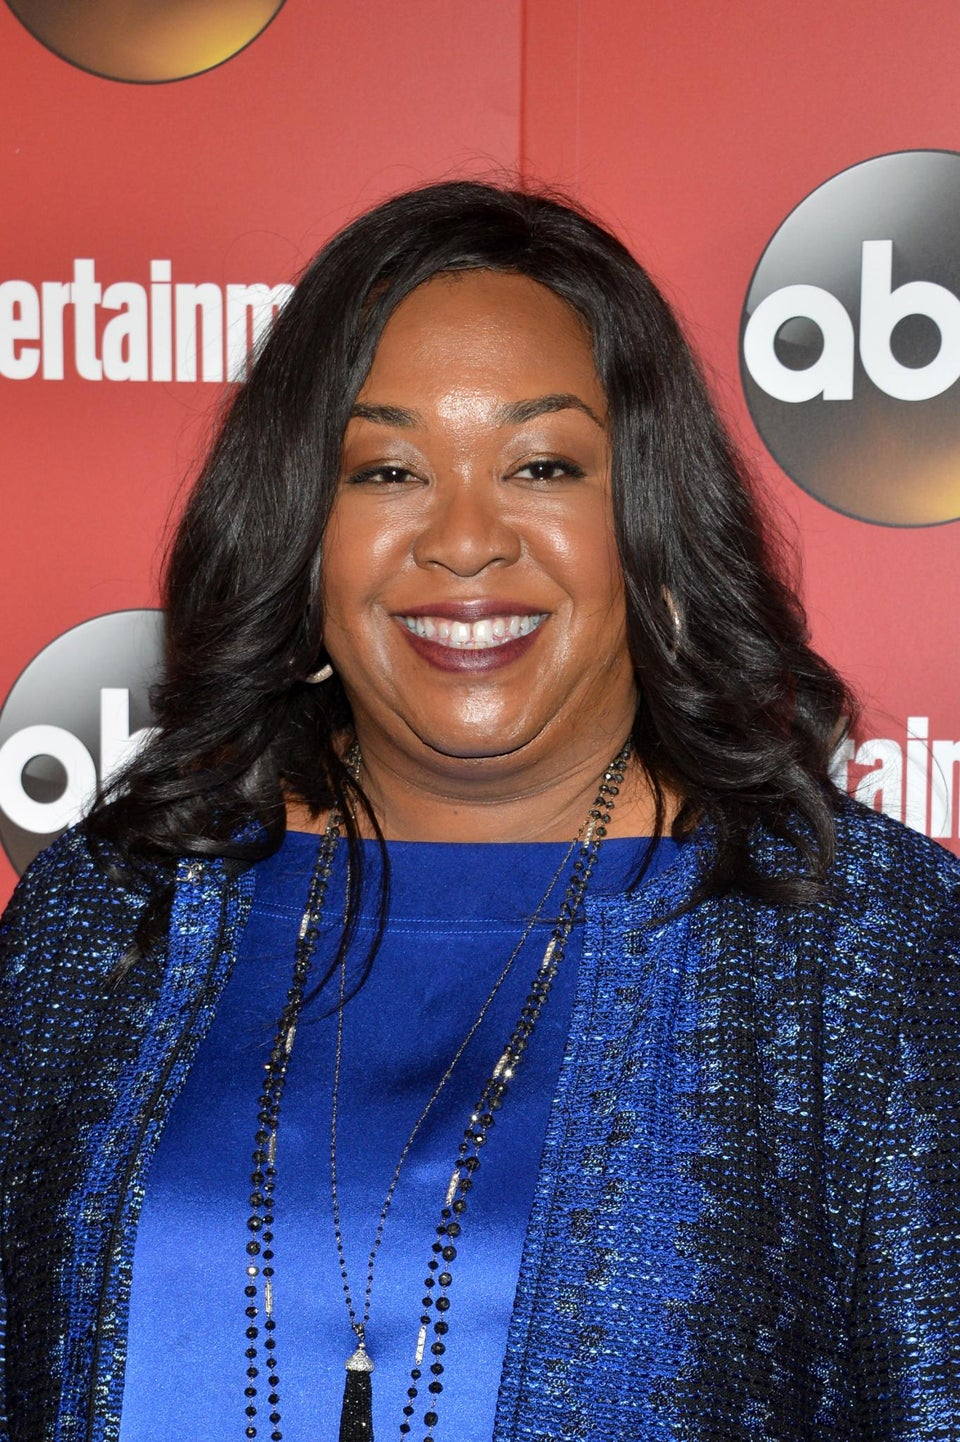 ABC Orders Third Shonda Rhimes Drama, 'How to Get Away With Murder'